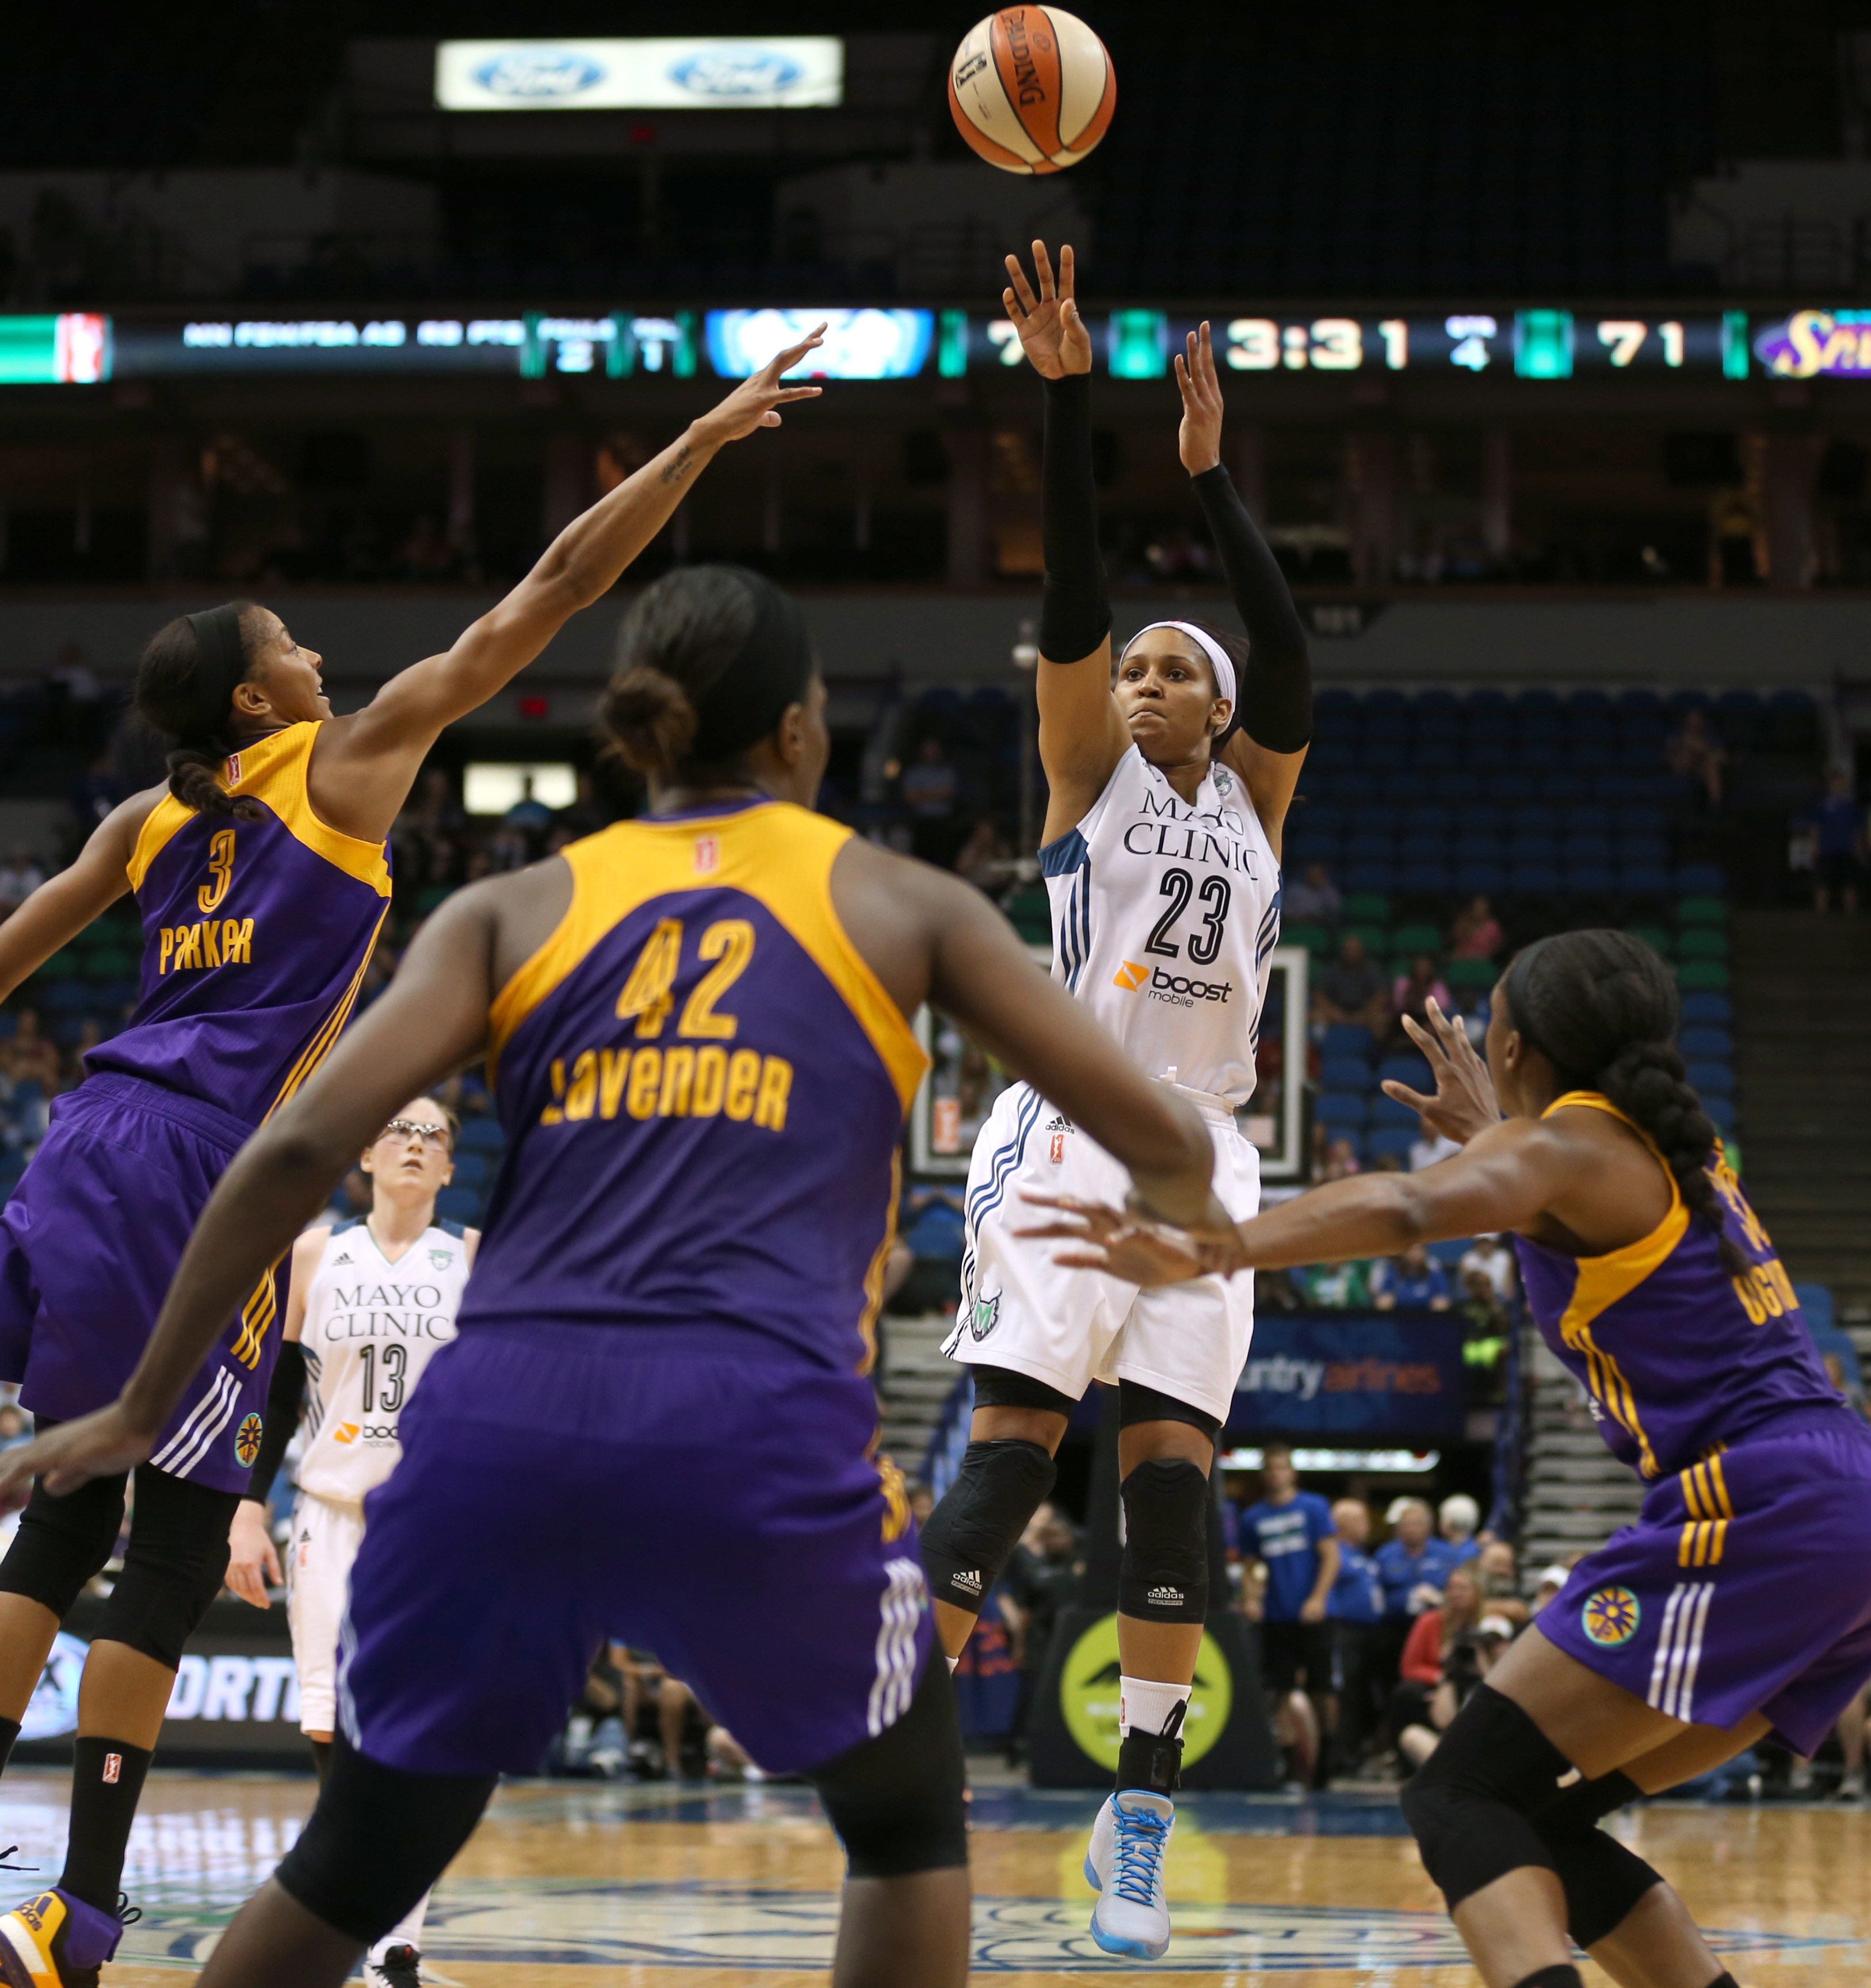 With 27 points against Los Angeles, Maya Moore extended her franchise-record 20+ points scoring streak to nine straight games. Moore entered the game averaging 25.6 points, 8.4 rebounds and 4.5 assists in her previous eight games.